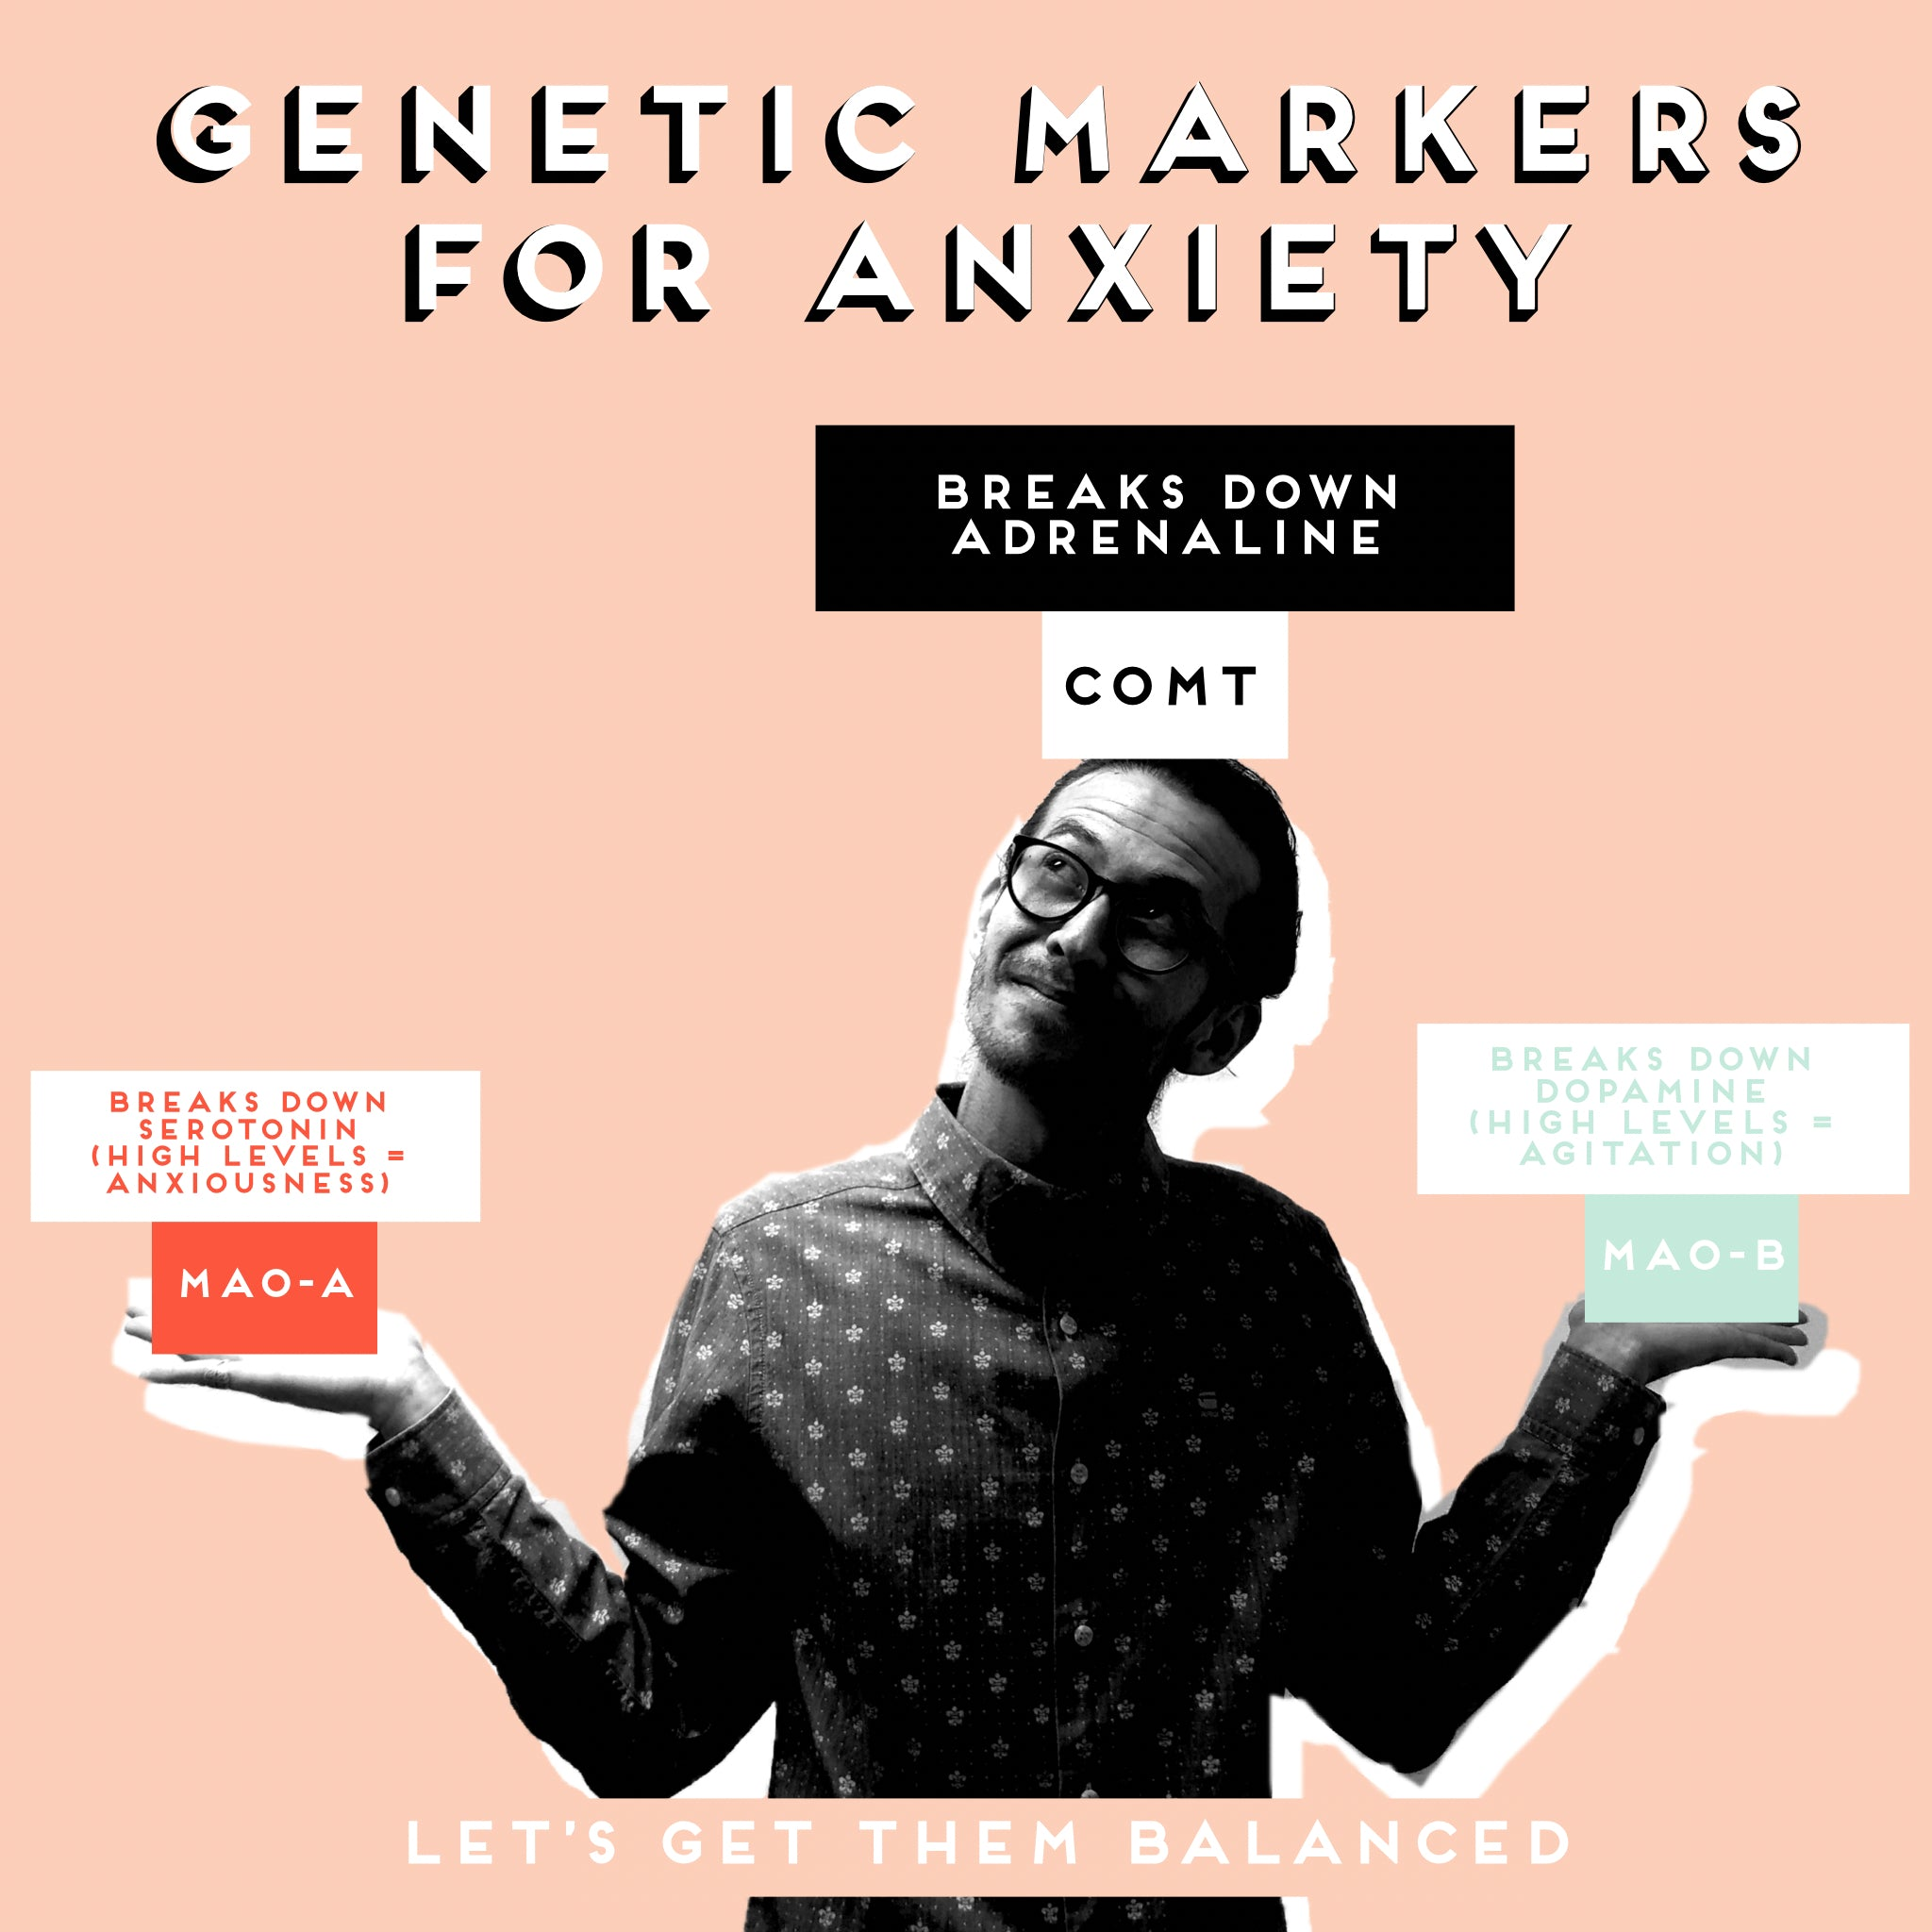 Doctor Motley - Genetic Markers and Anxiety